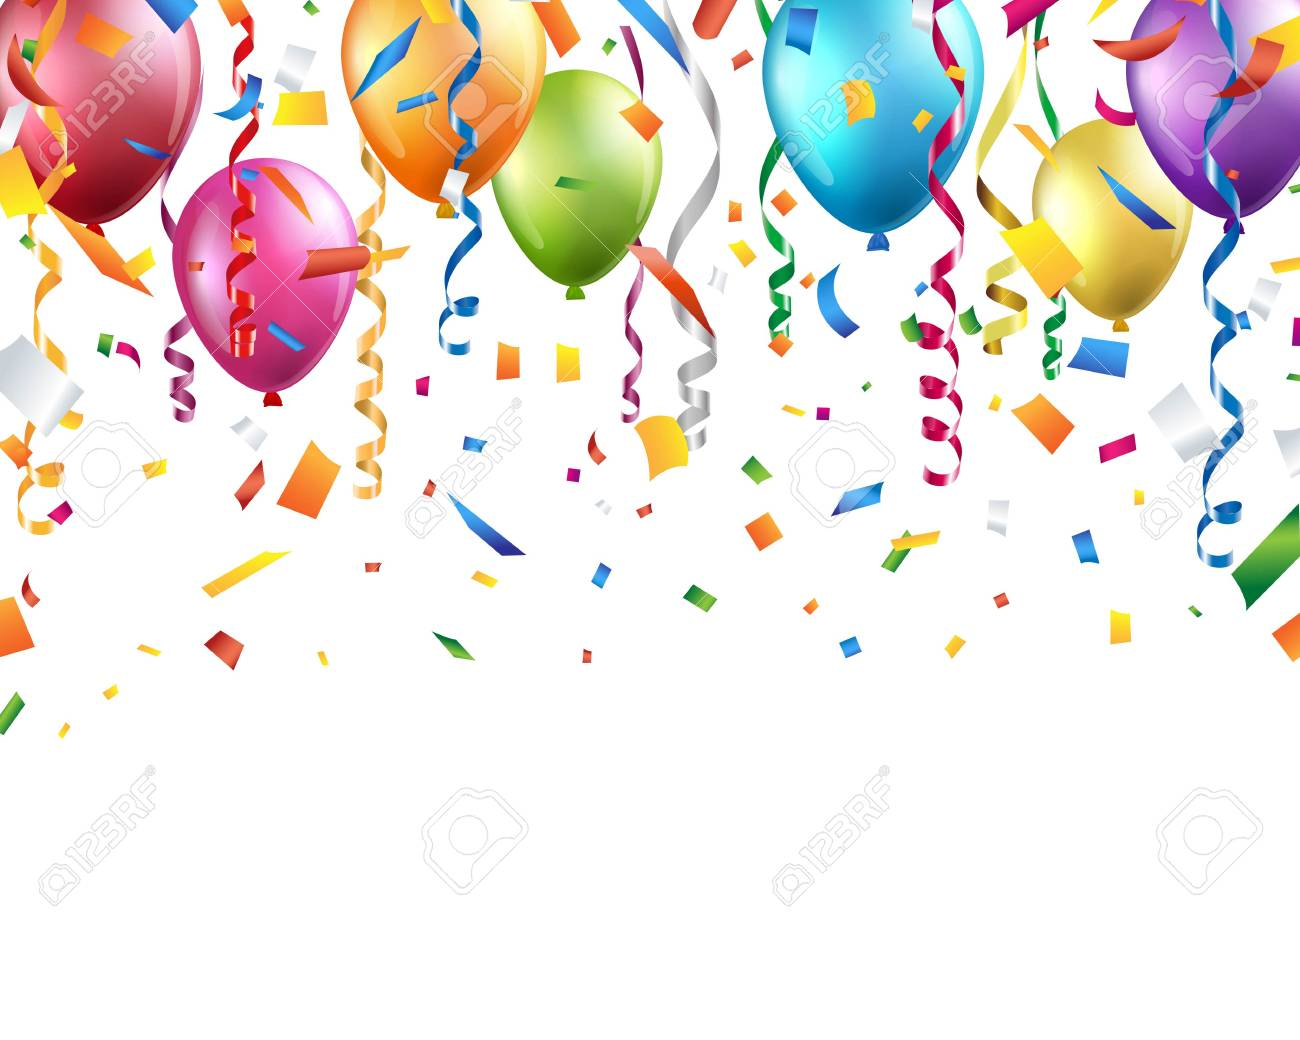 Colorful balloons, confetti and streamers on white background.